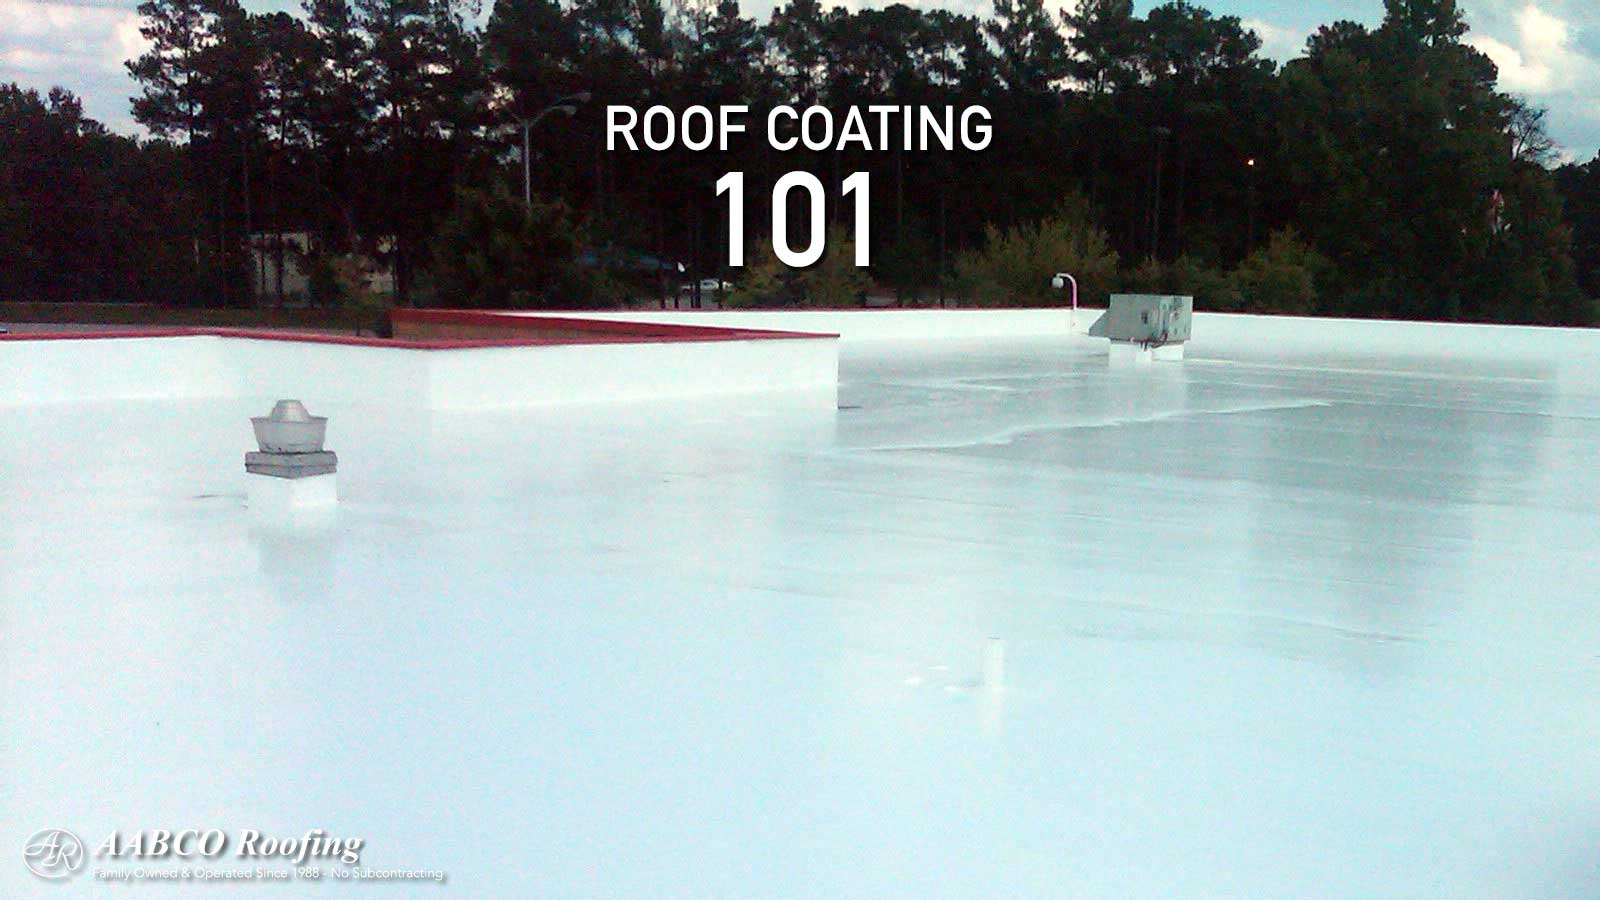 Roof Coating 101